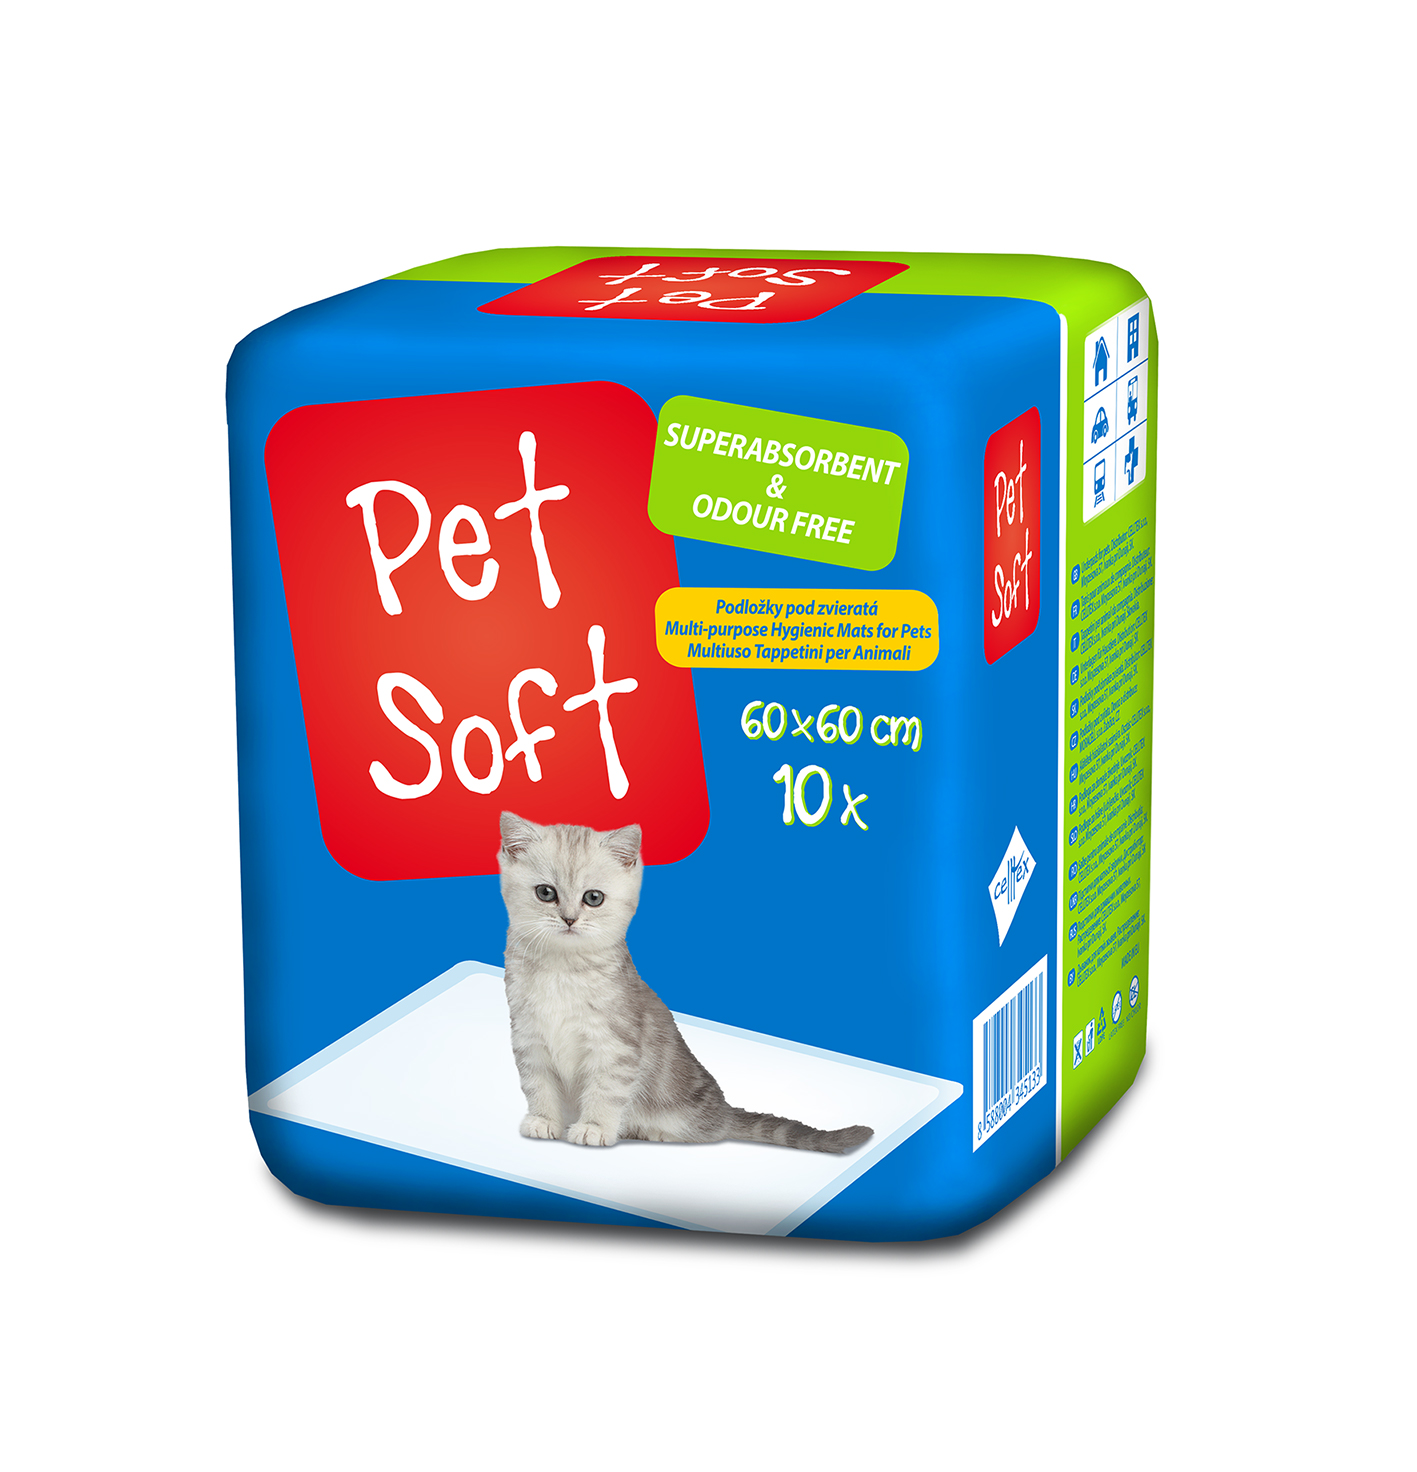 8588004345133 Pet Soft 3D new cat